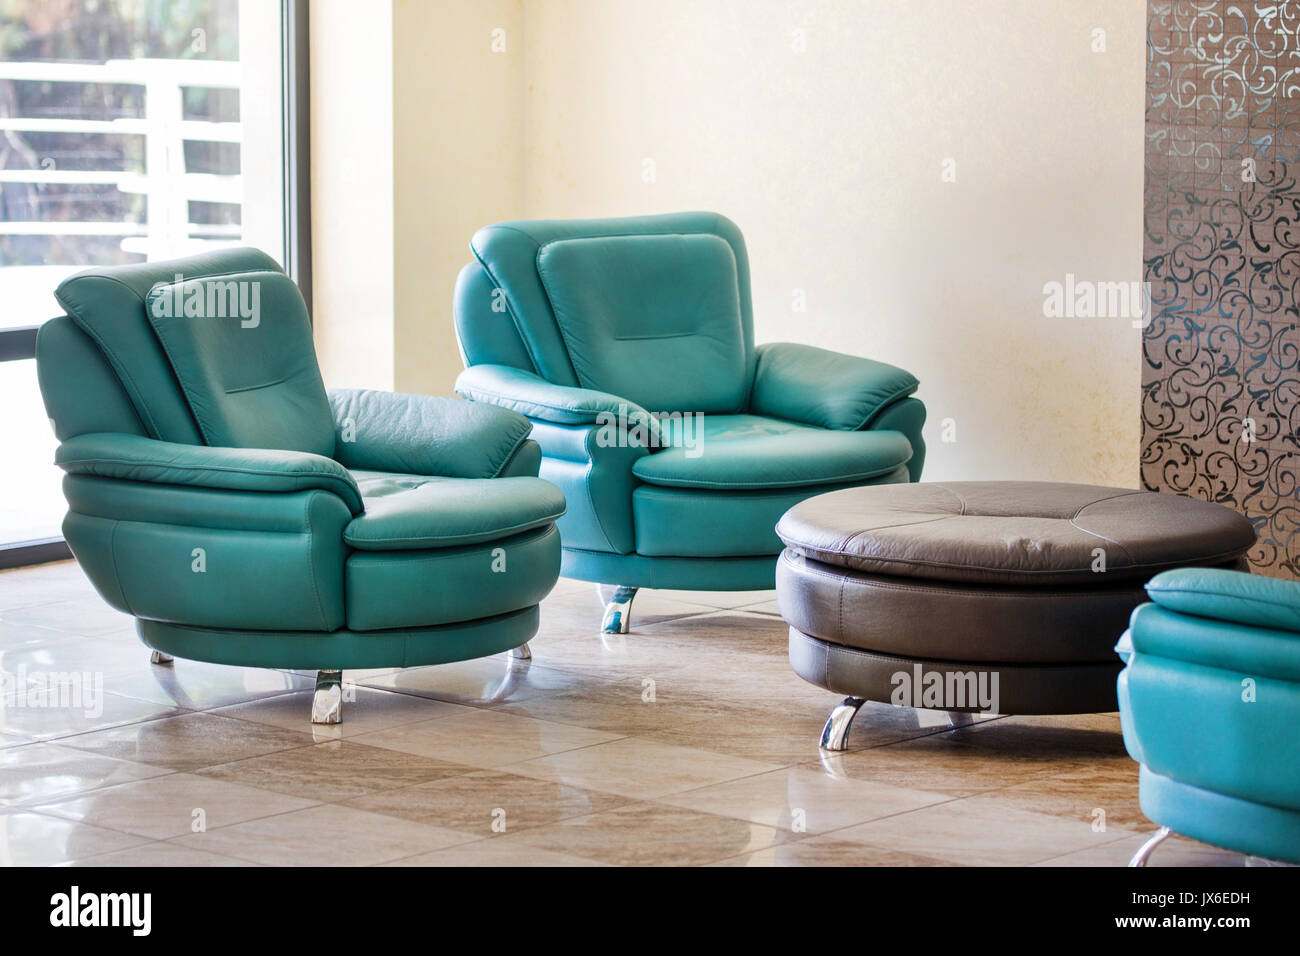 fortable modern luxury leather armchairs and round table in a hall JX6EDH